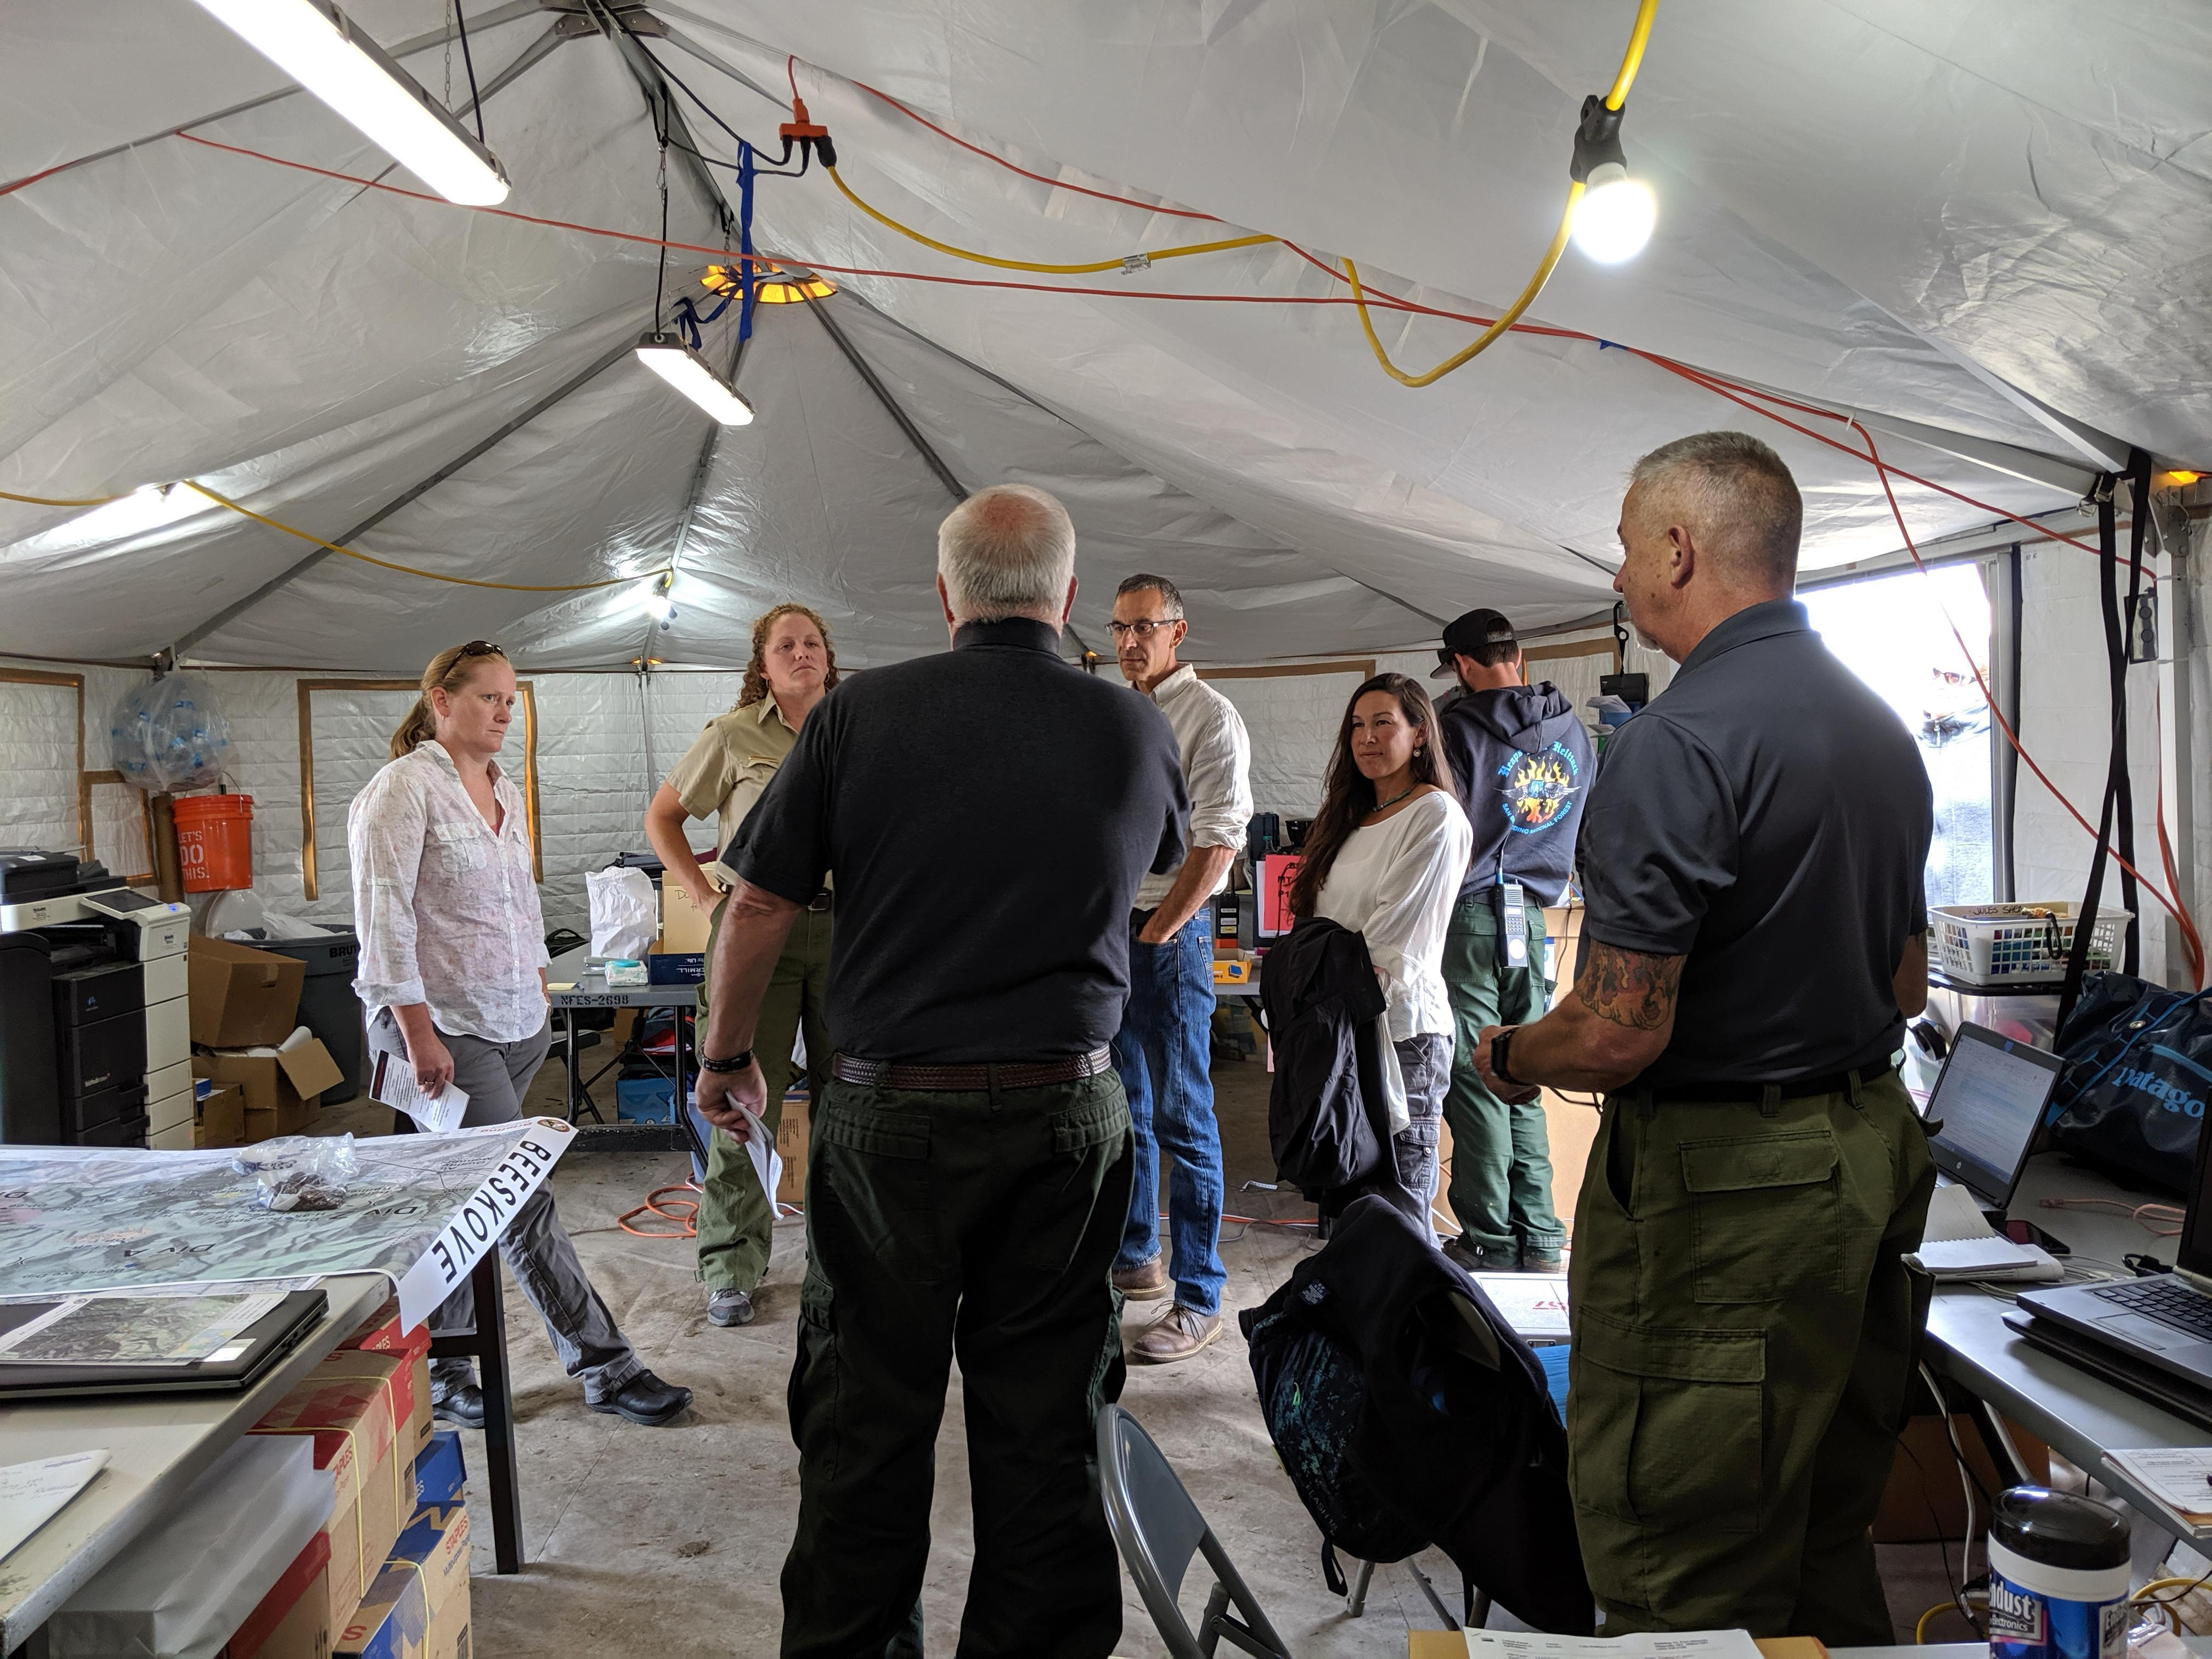 People gathered in a tent having a discussion